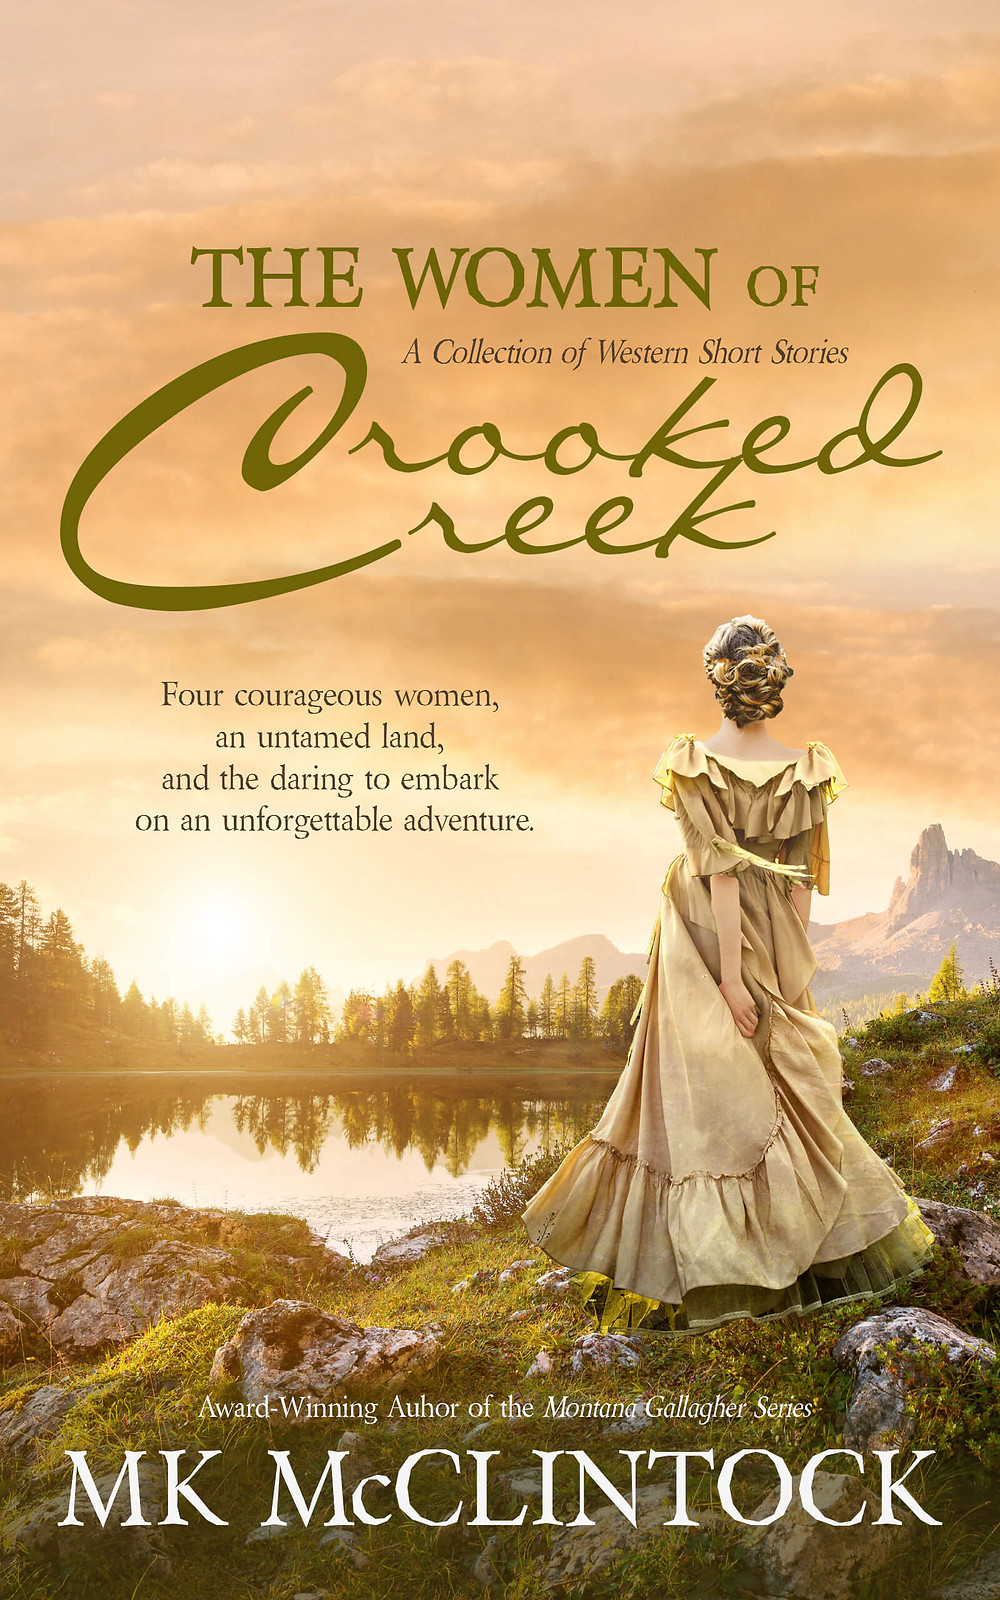 The Women of Crooked Creek by MK McClintock - historical western adventures set in Montana